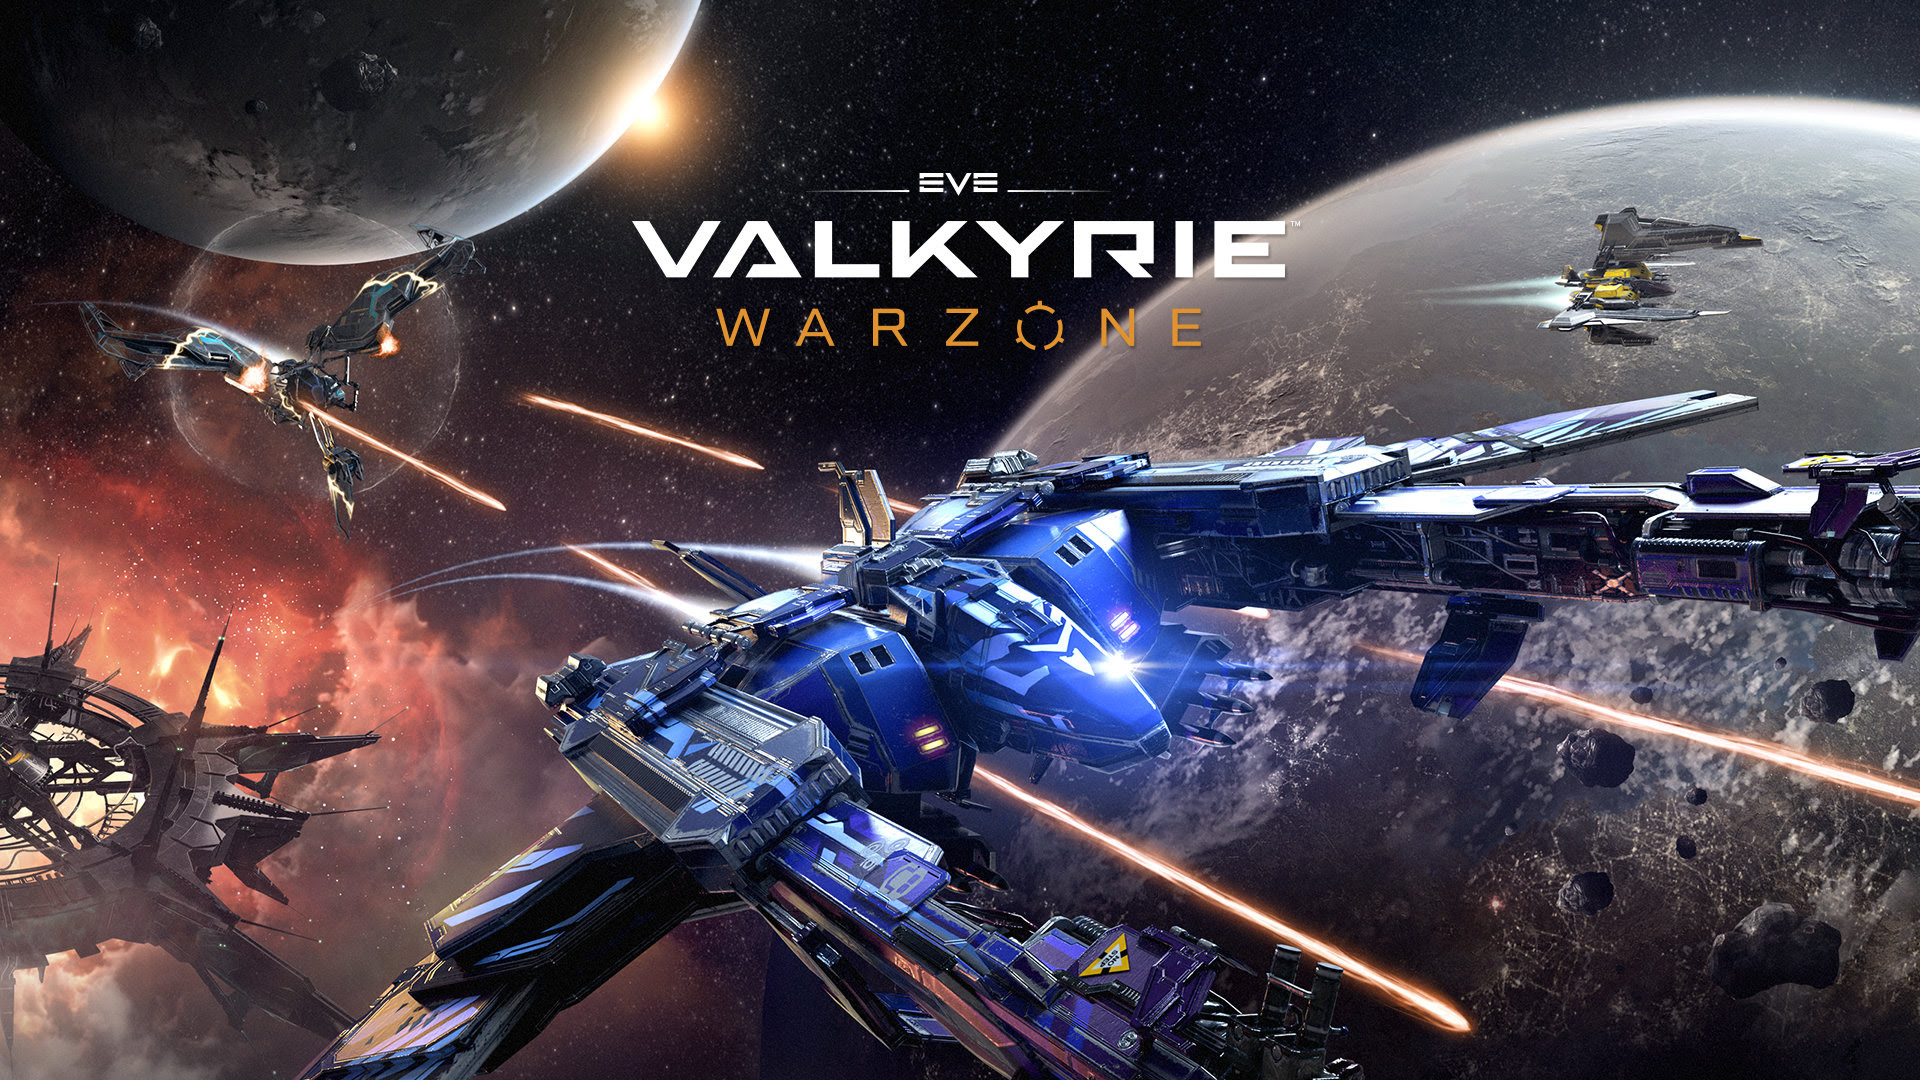 Non-VR Eve: Valkyrie launching September with cross-reality play